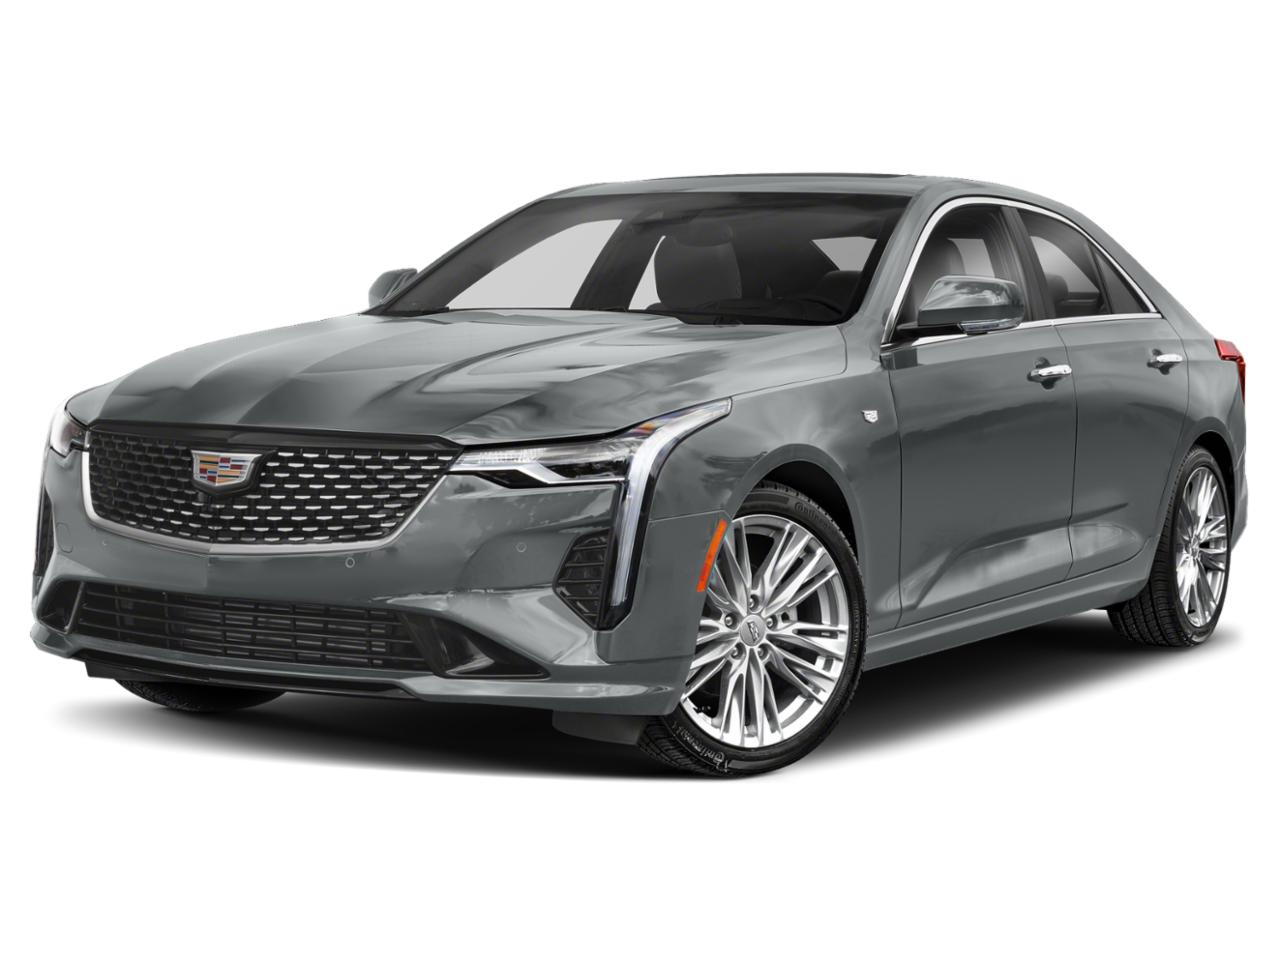 2021 Cadillac CT4 Vehicle Photo in San Antonio, TX 78230